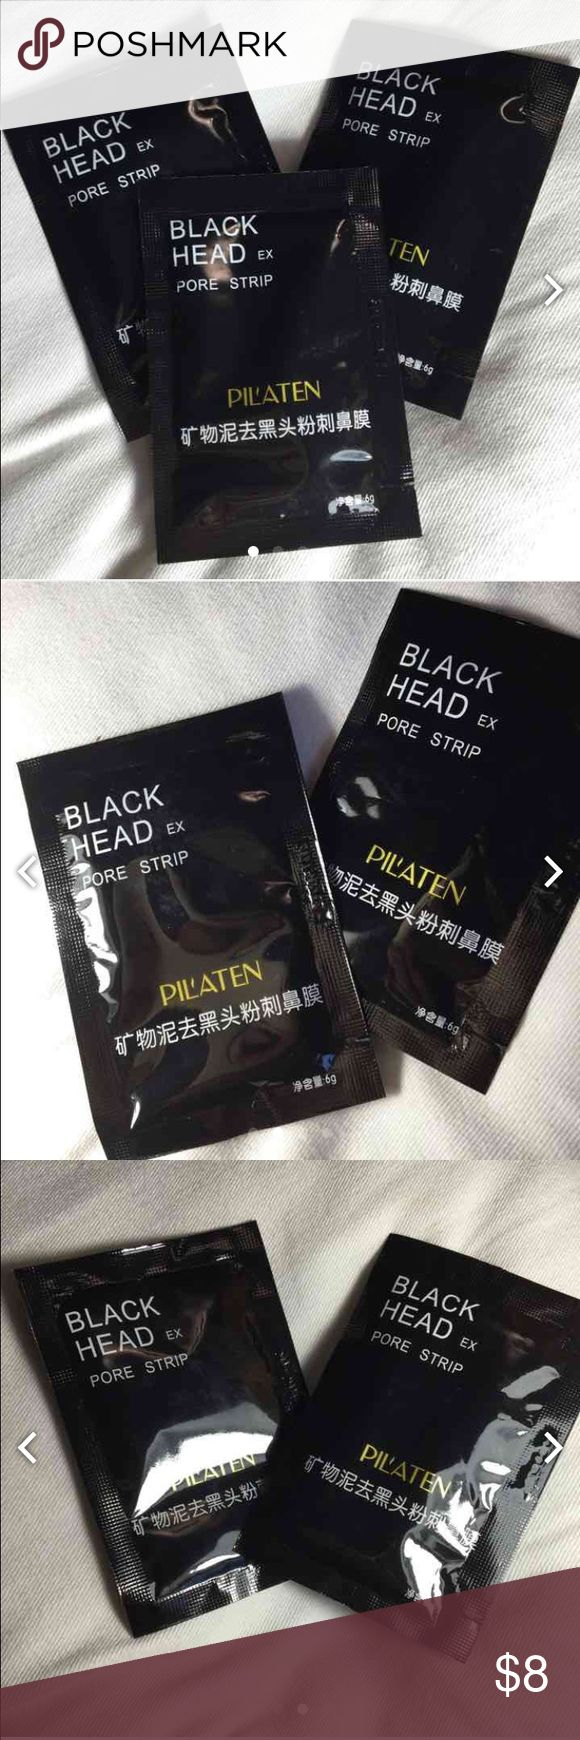 Black head pore strip PLEASE READ DESCRIPTION  Ships same/ next day Every purchase comes with a bonus free item Price for 2 Each package comes carefully packed with a bow and hand written note   Check out my other listings Don't like it own it  ONLY reasonable offers please Makeup Face Primer